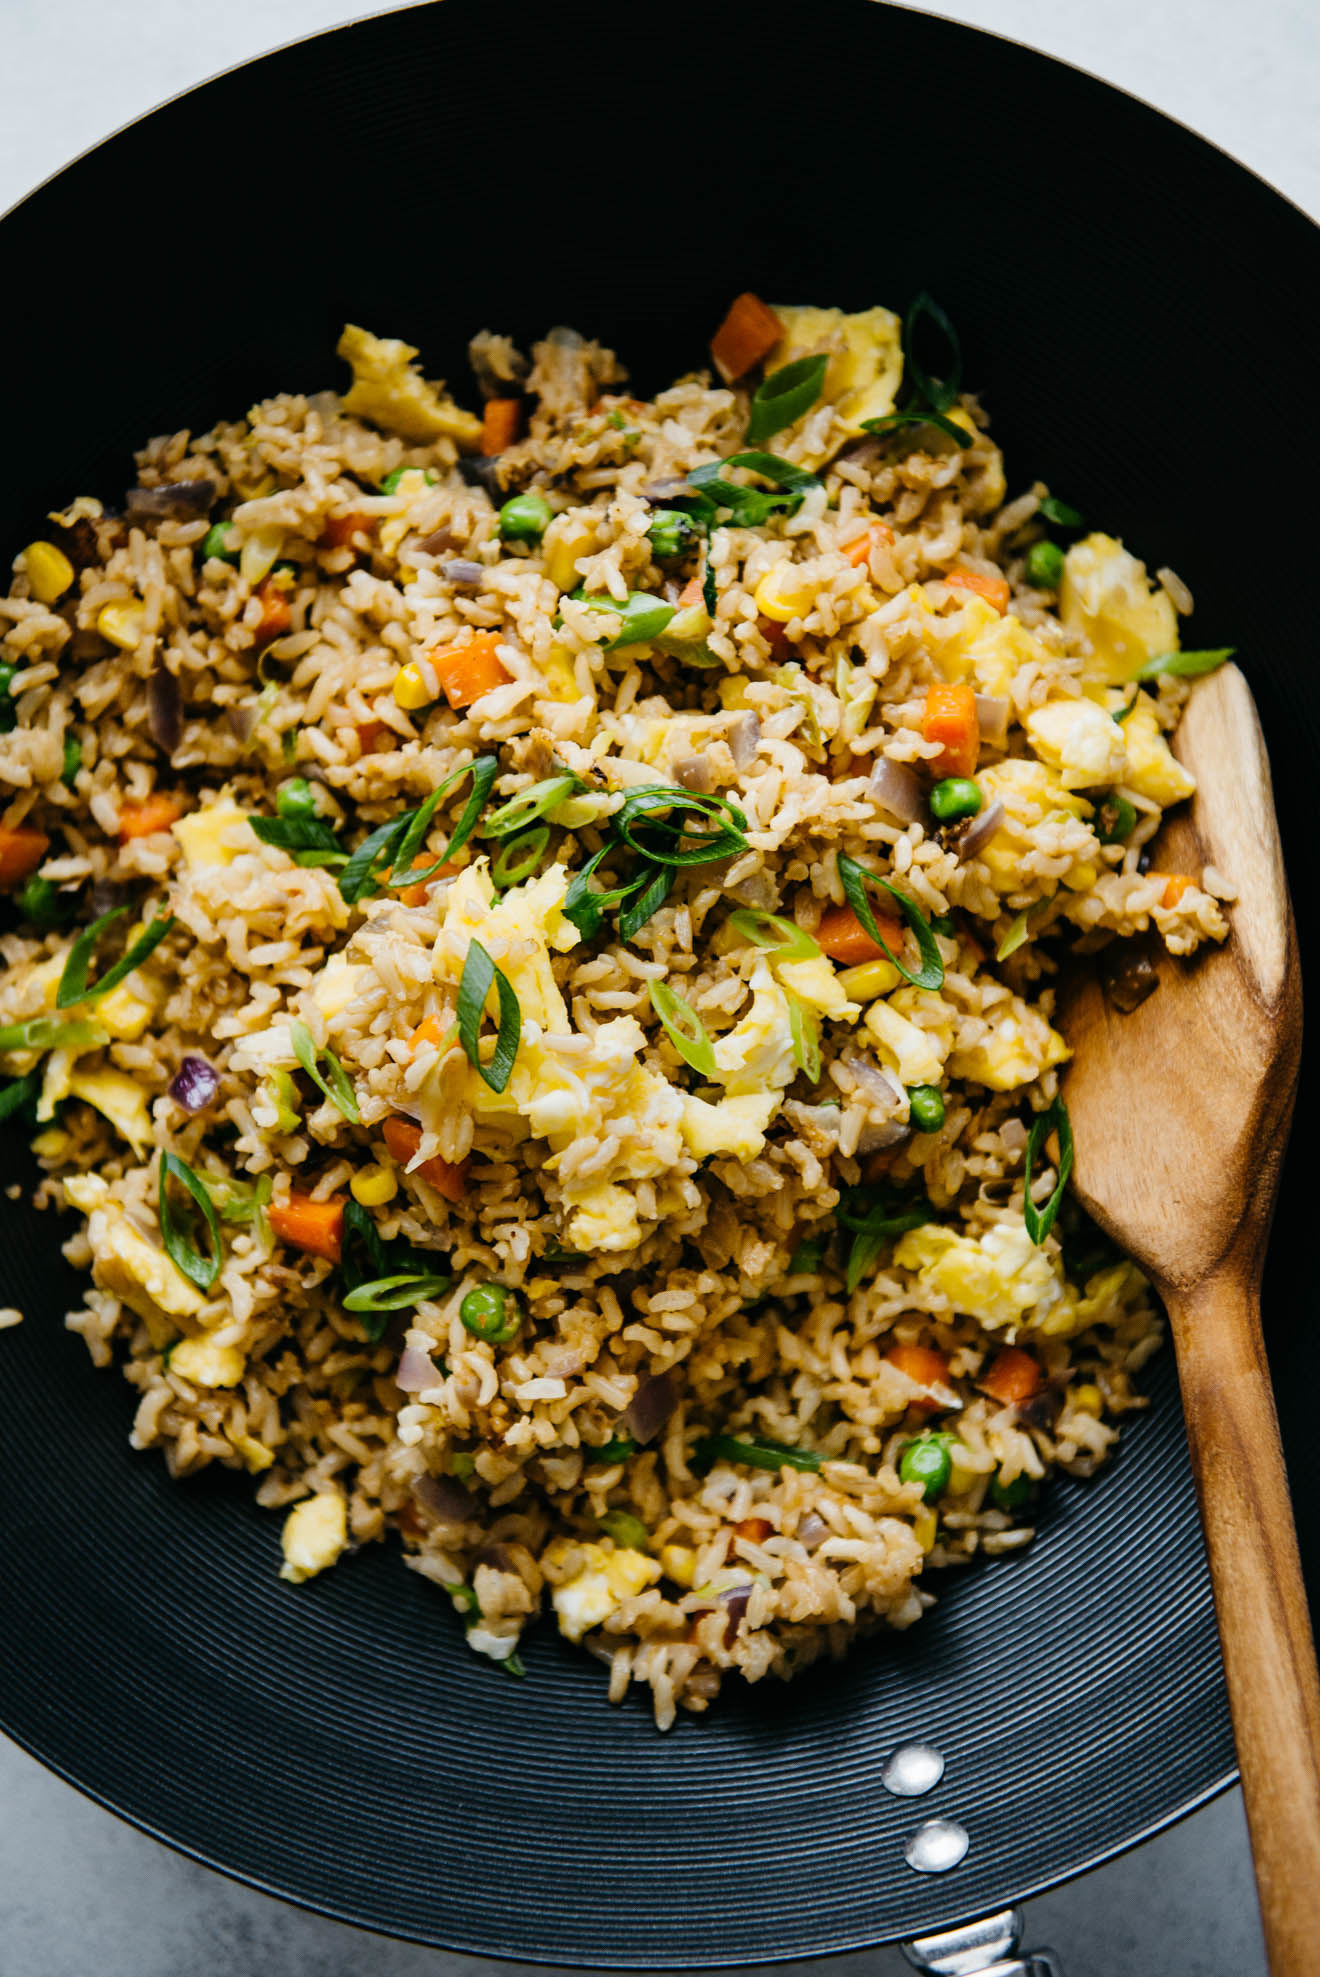 A skillet with egg fried rice and mixed veggies like carrots, peas, and scallions